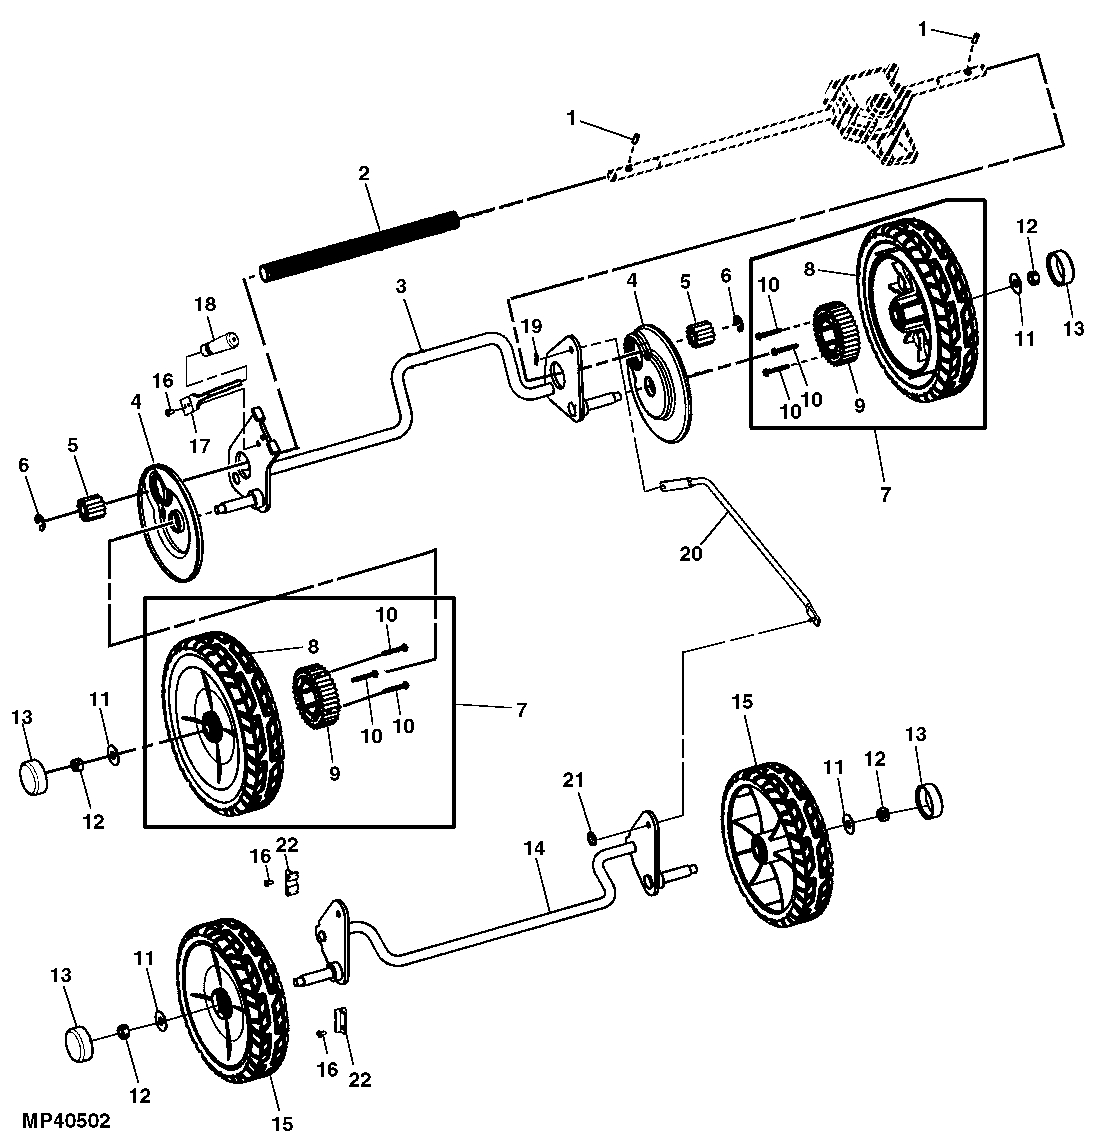 John Deere 826 Snowblower Wiring Diagram